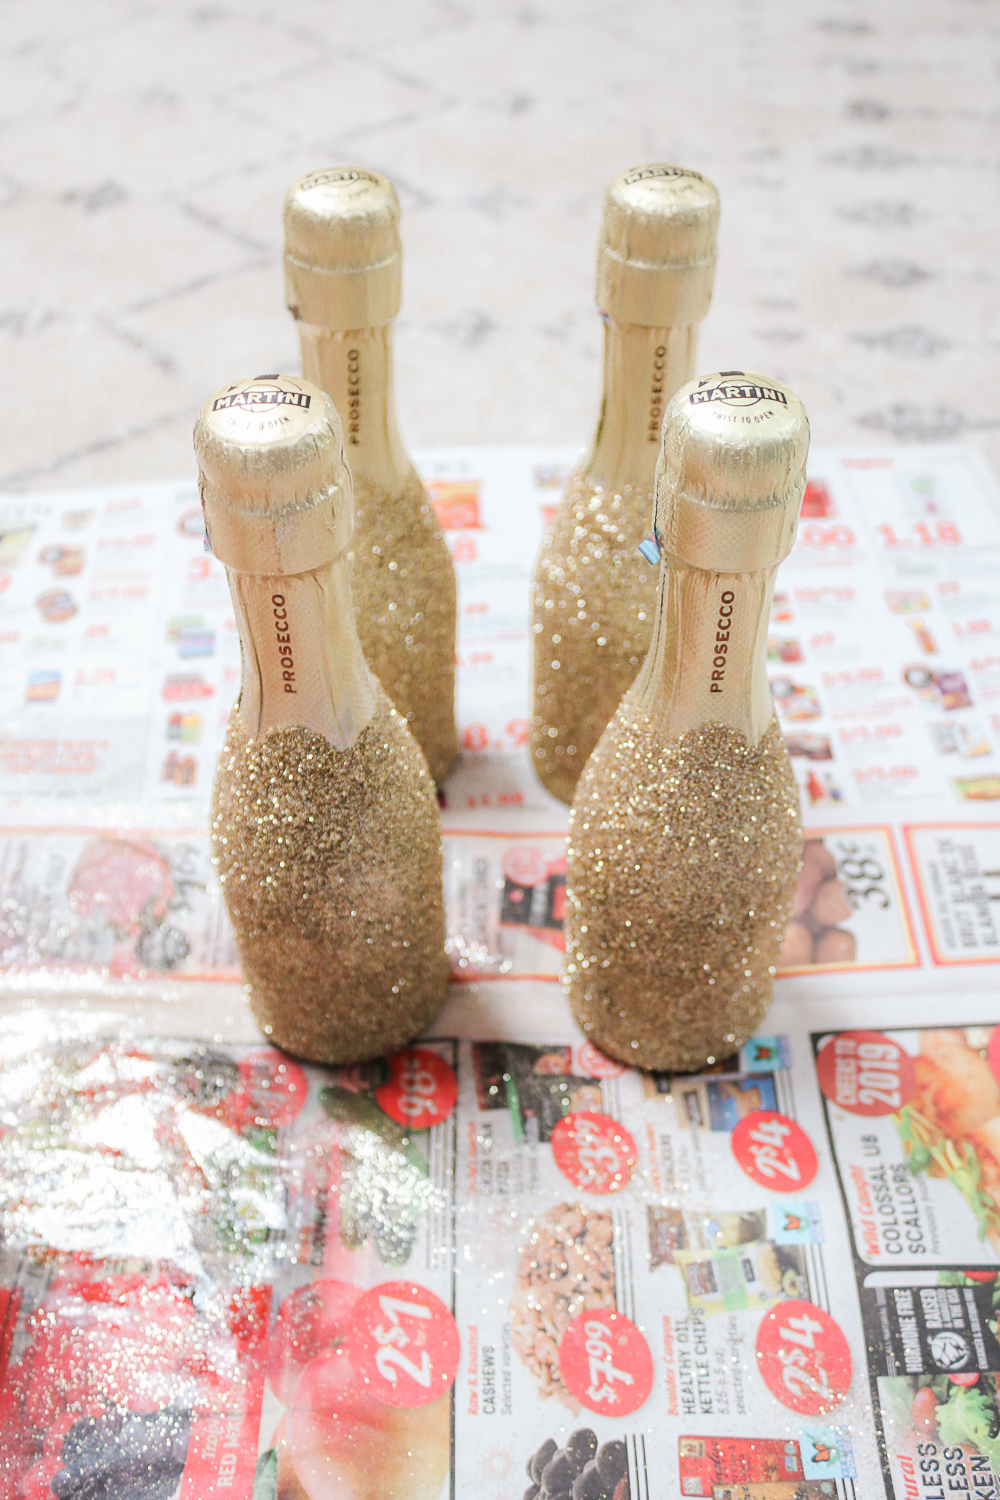 how to decorate alcohol bottles with glitter, mini glitter bottle diy tutorial, popular diy blogger Stephanie Ziajka, popular DIY blog Diary of a Debutante